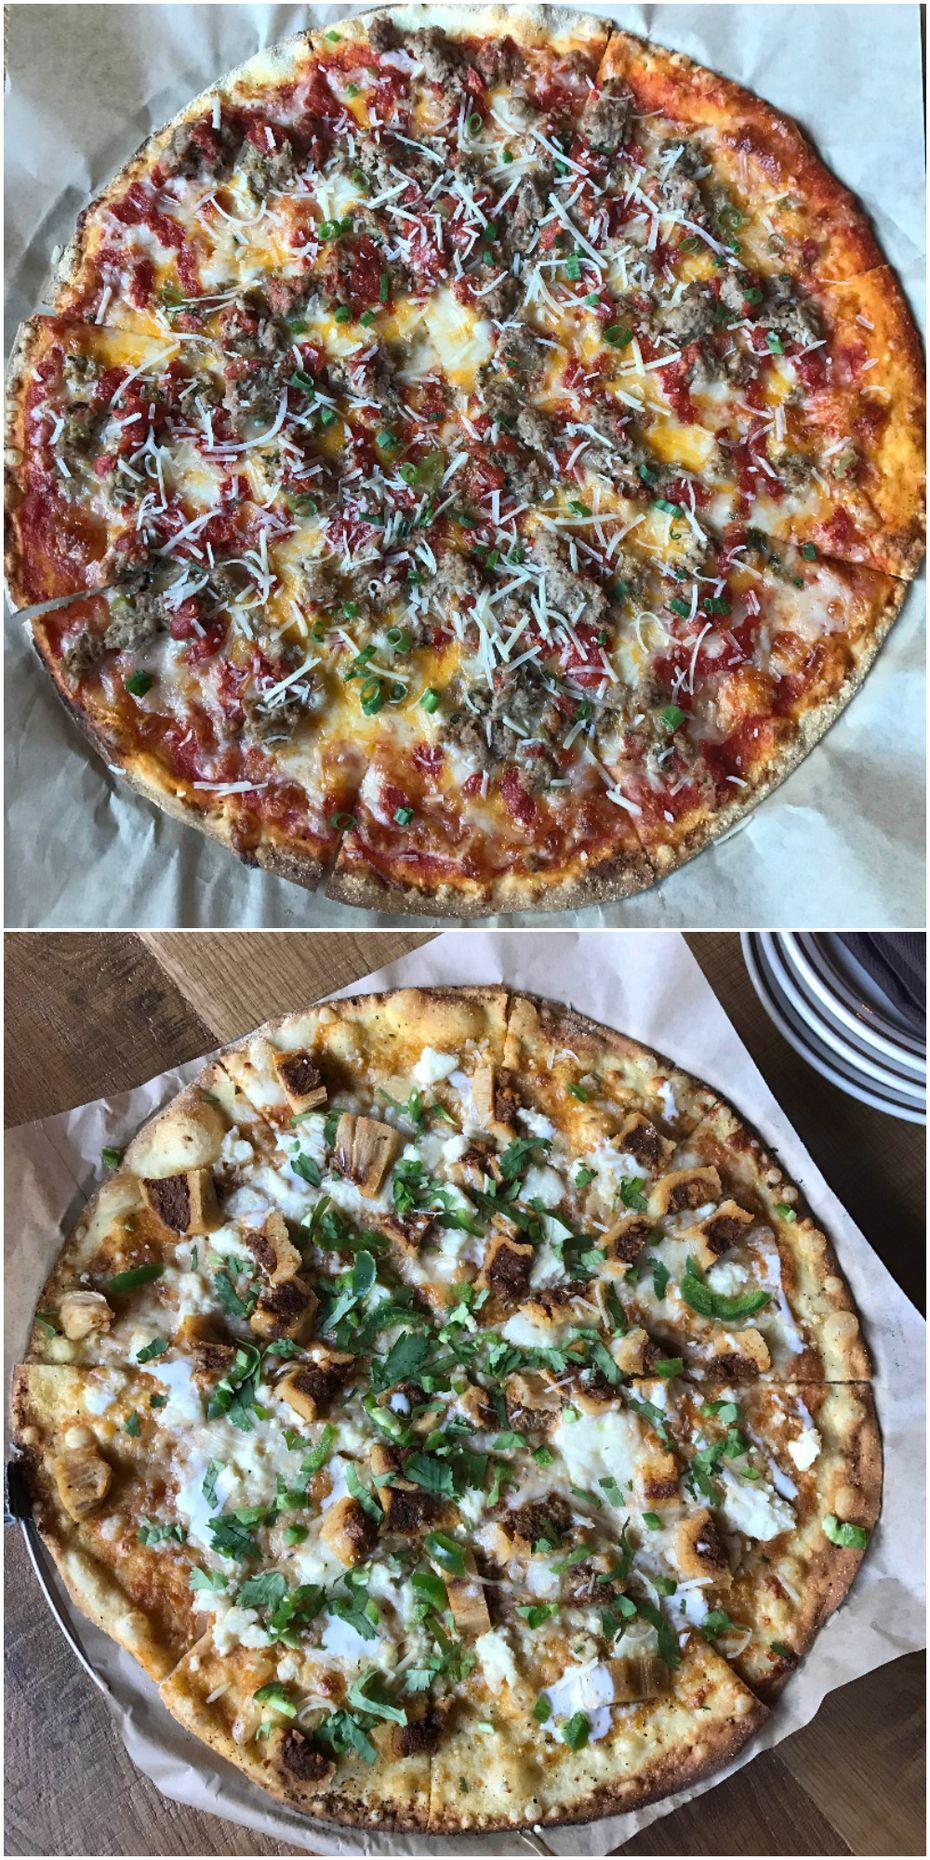 Top: The Trump Meatloaf Pie, Bottom: Clinton Ancho Pork Tamale Pizza